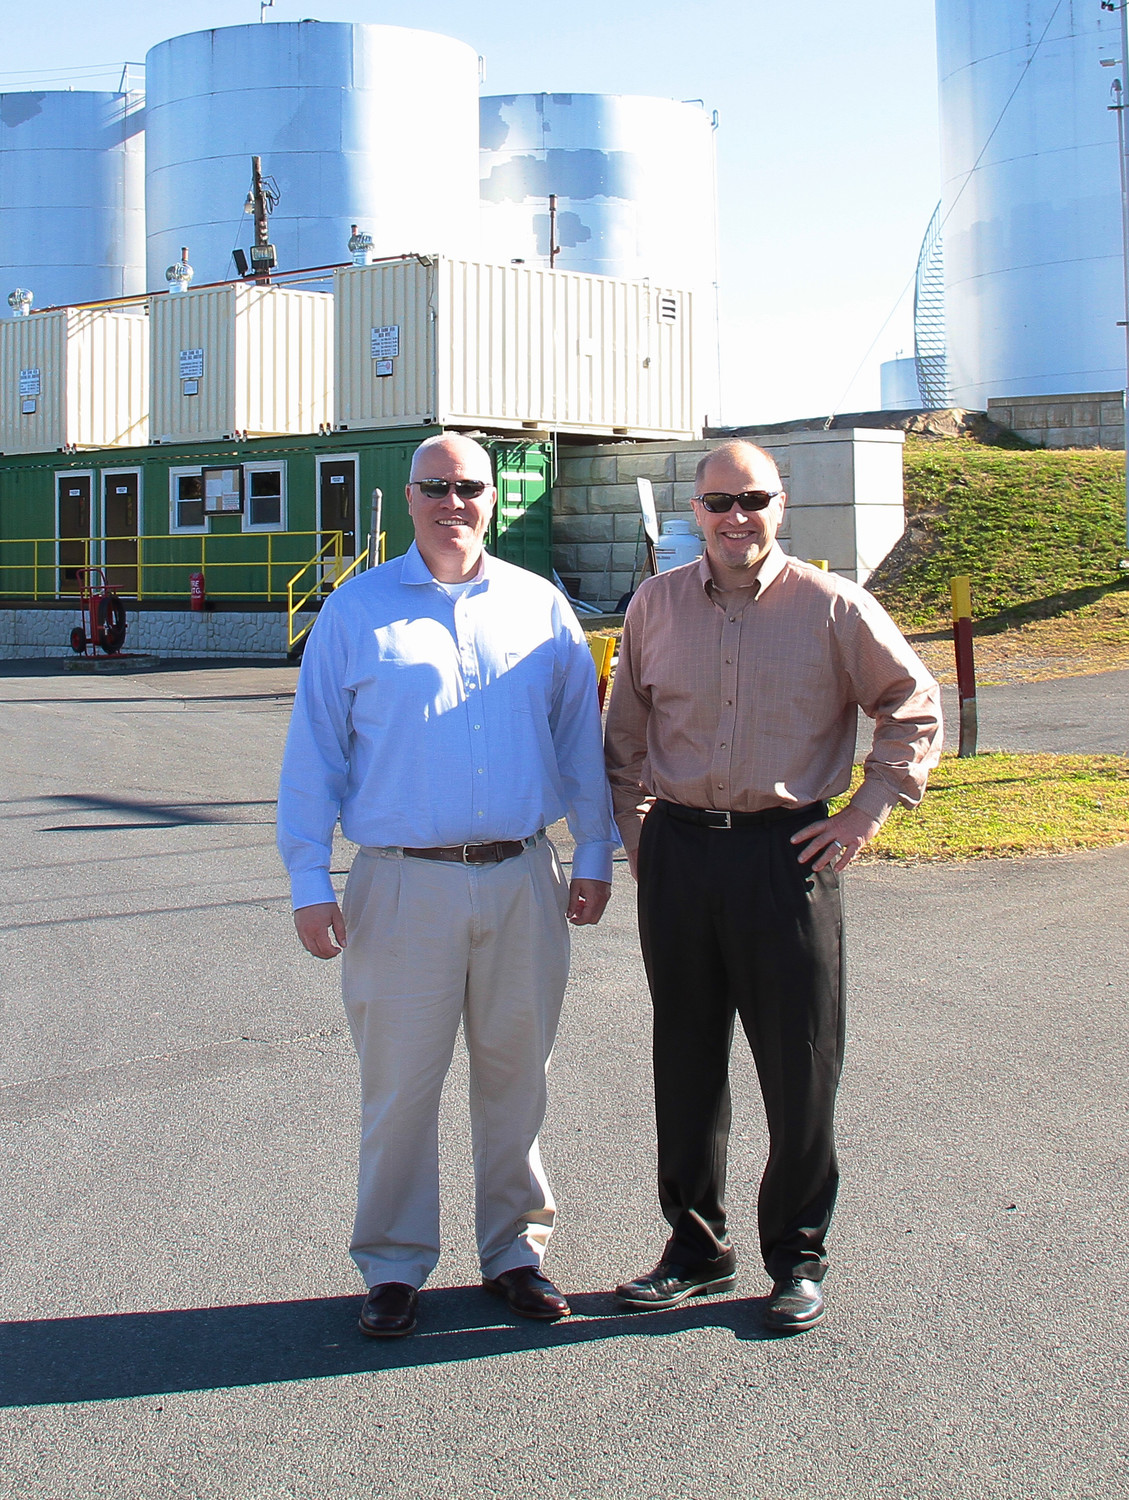 Patrick Garraghan and Ken Davenport at the Kingston Point Fuel Depot